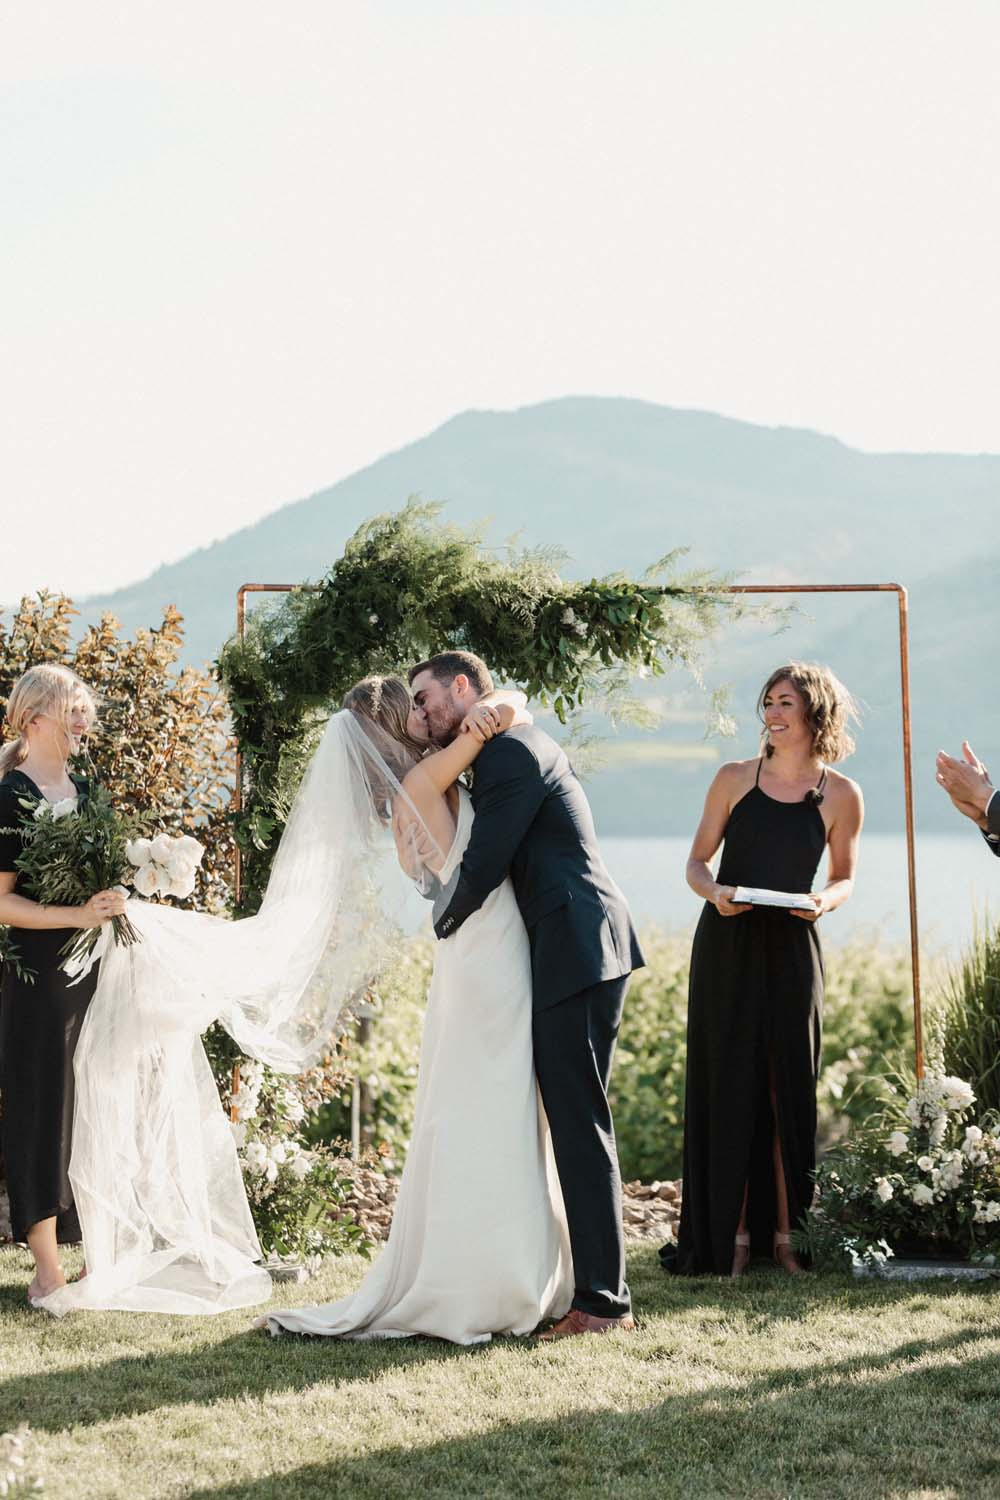 Jill Lansky of The August Diaries' Modern-Chic Wedding In British Columbia - ceremony kiss